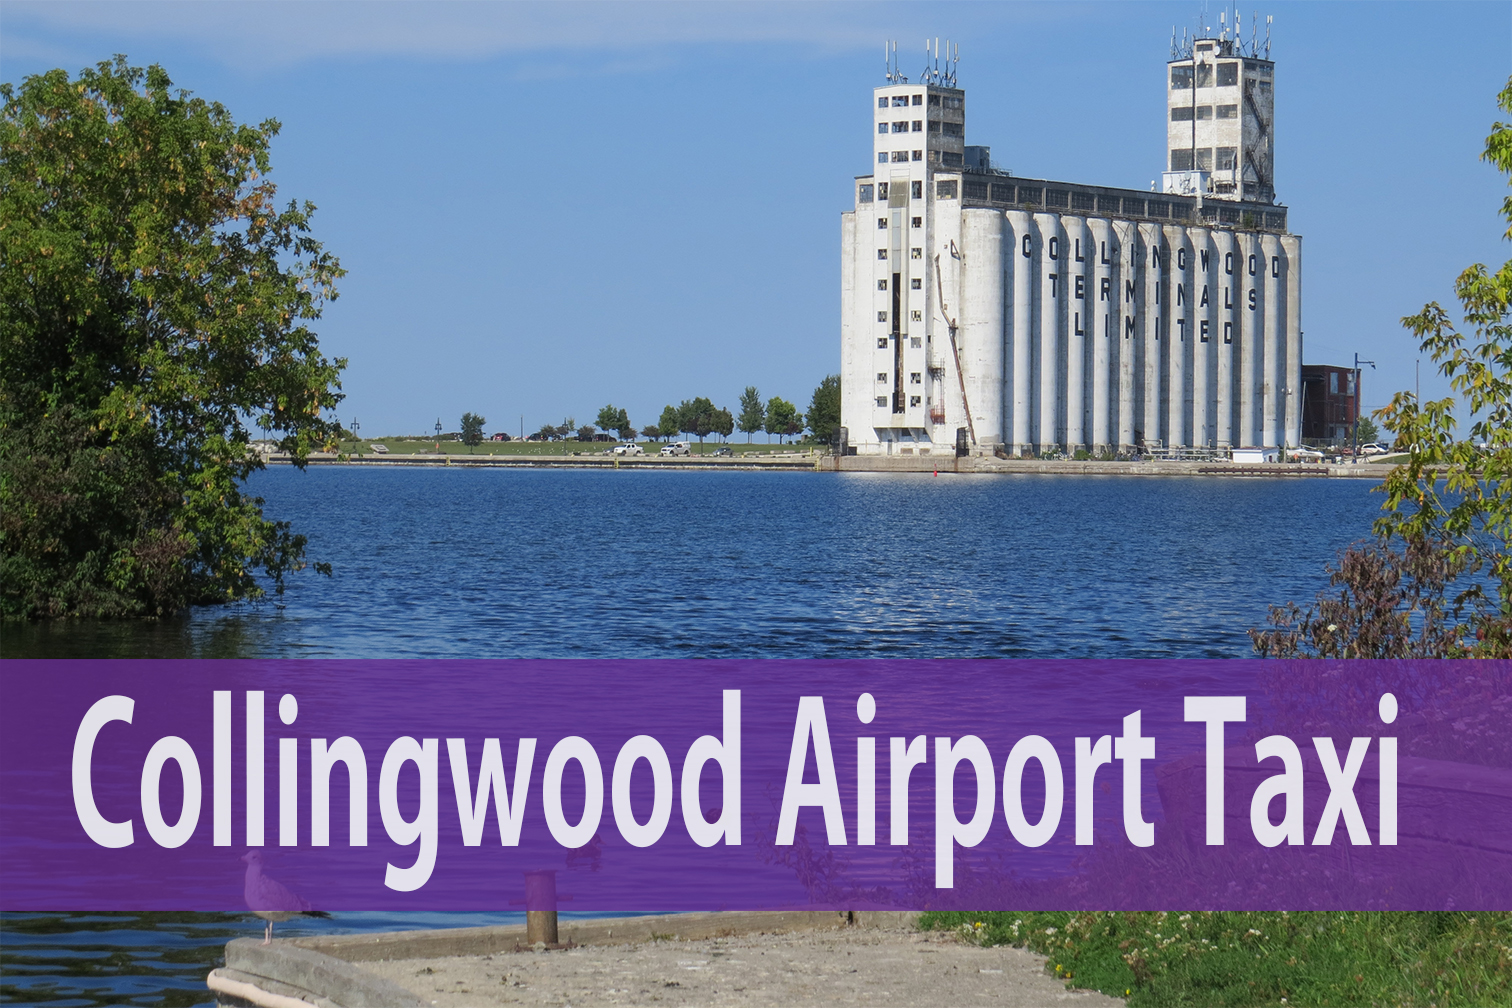 Collingwood Airport Taxi